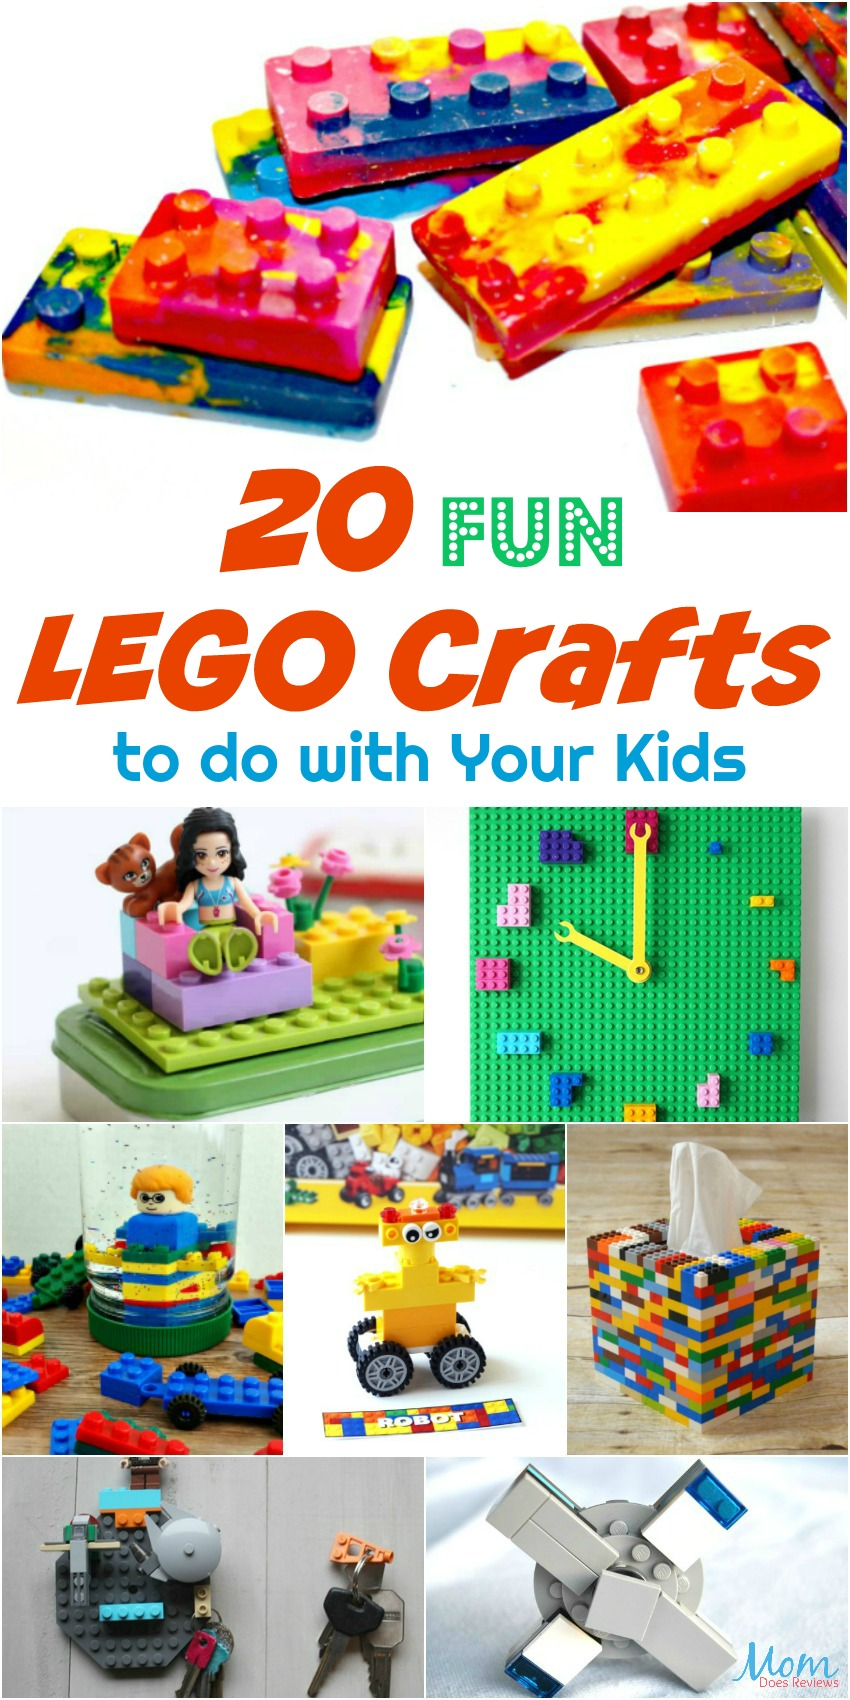 20 Fun LEGO Crafts to do with Your Kids #crafts #LEGOS #LEGO #funstuff #DIY